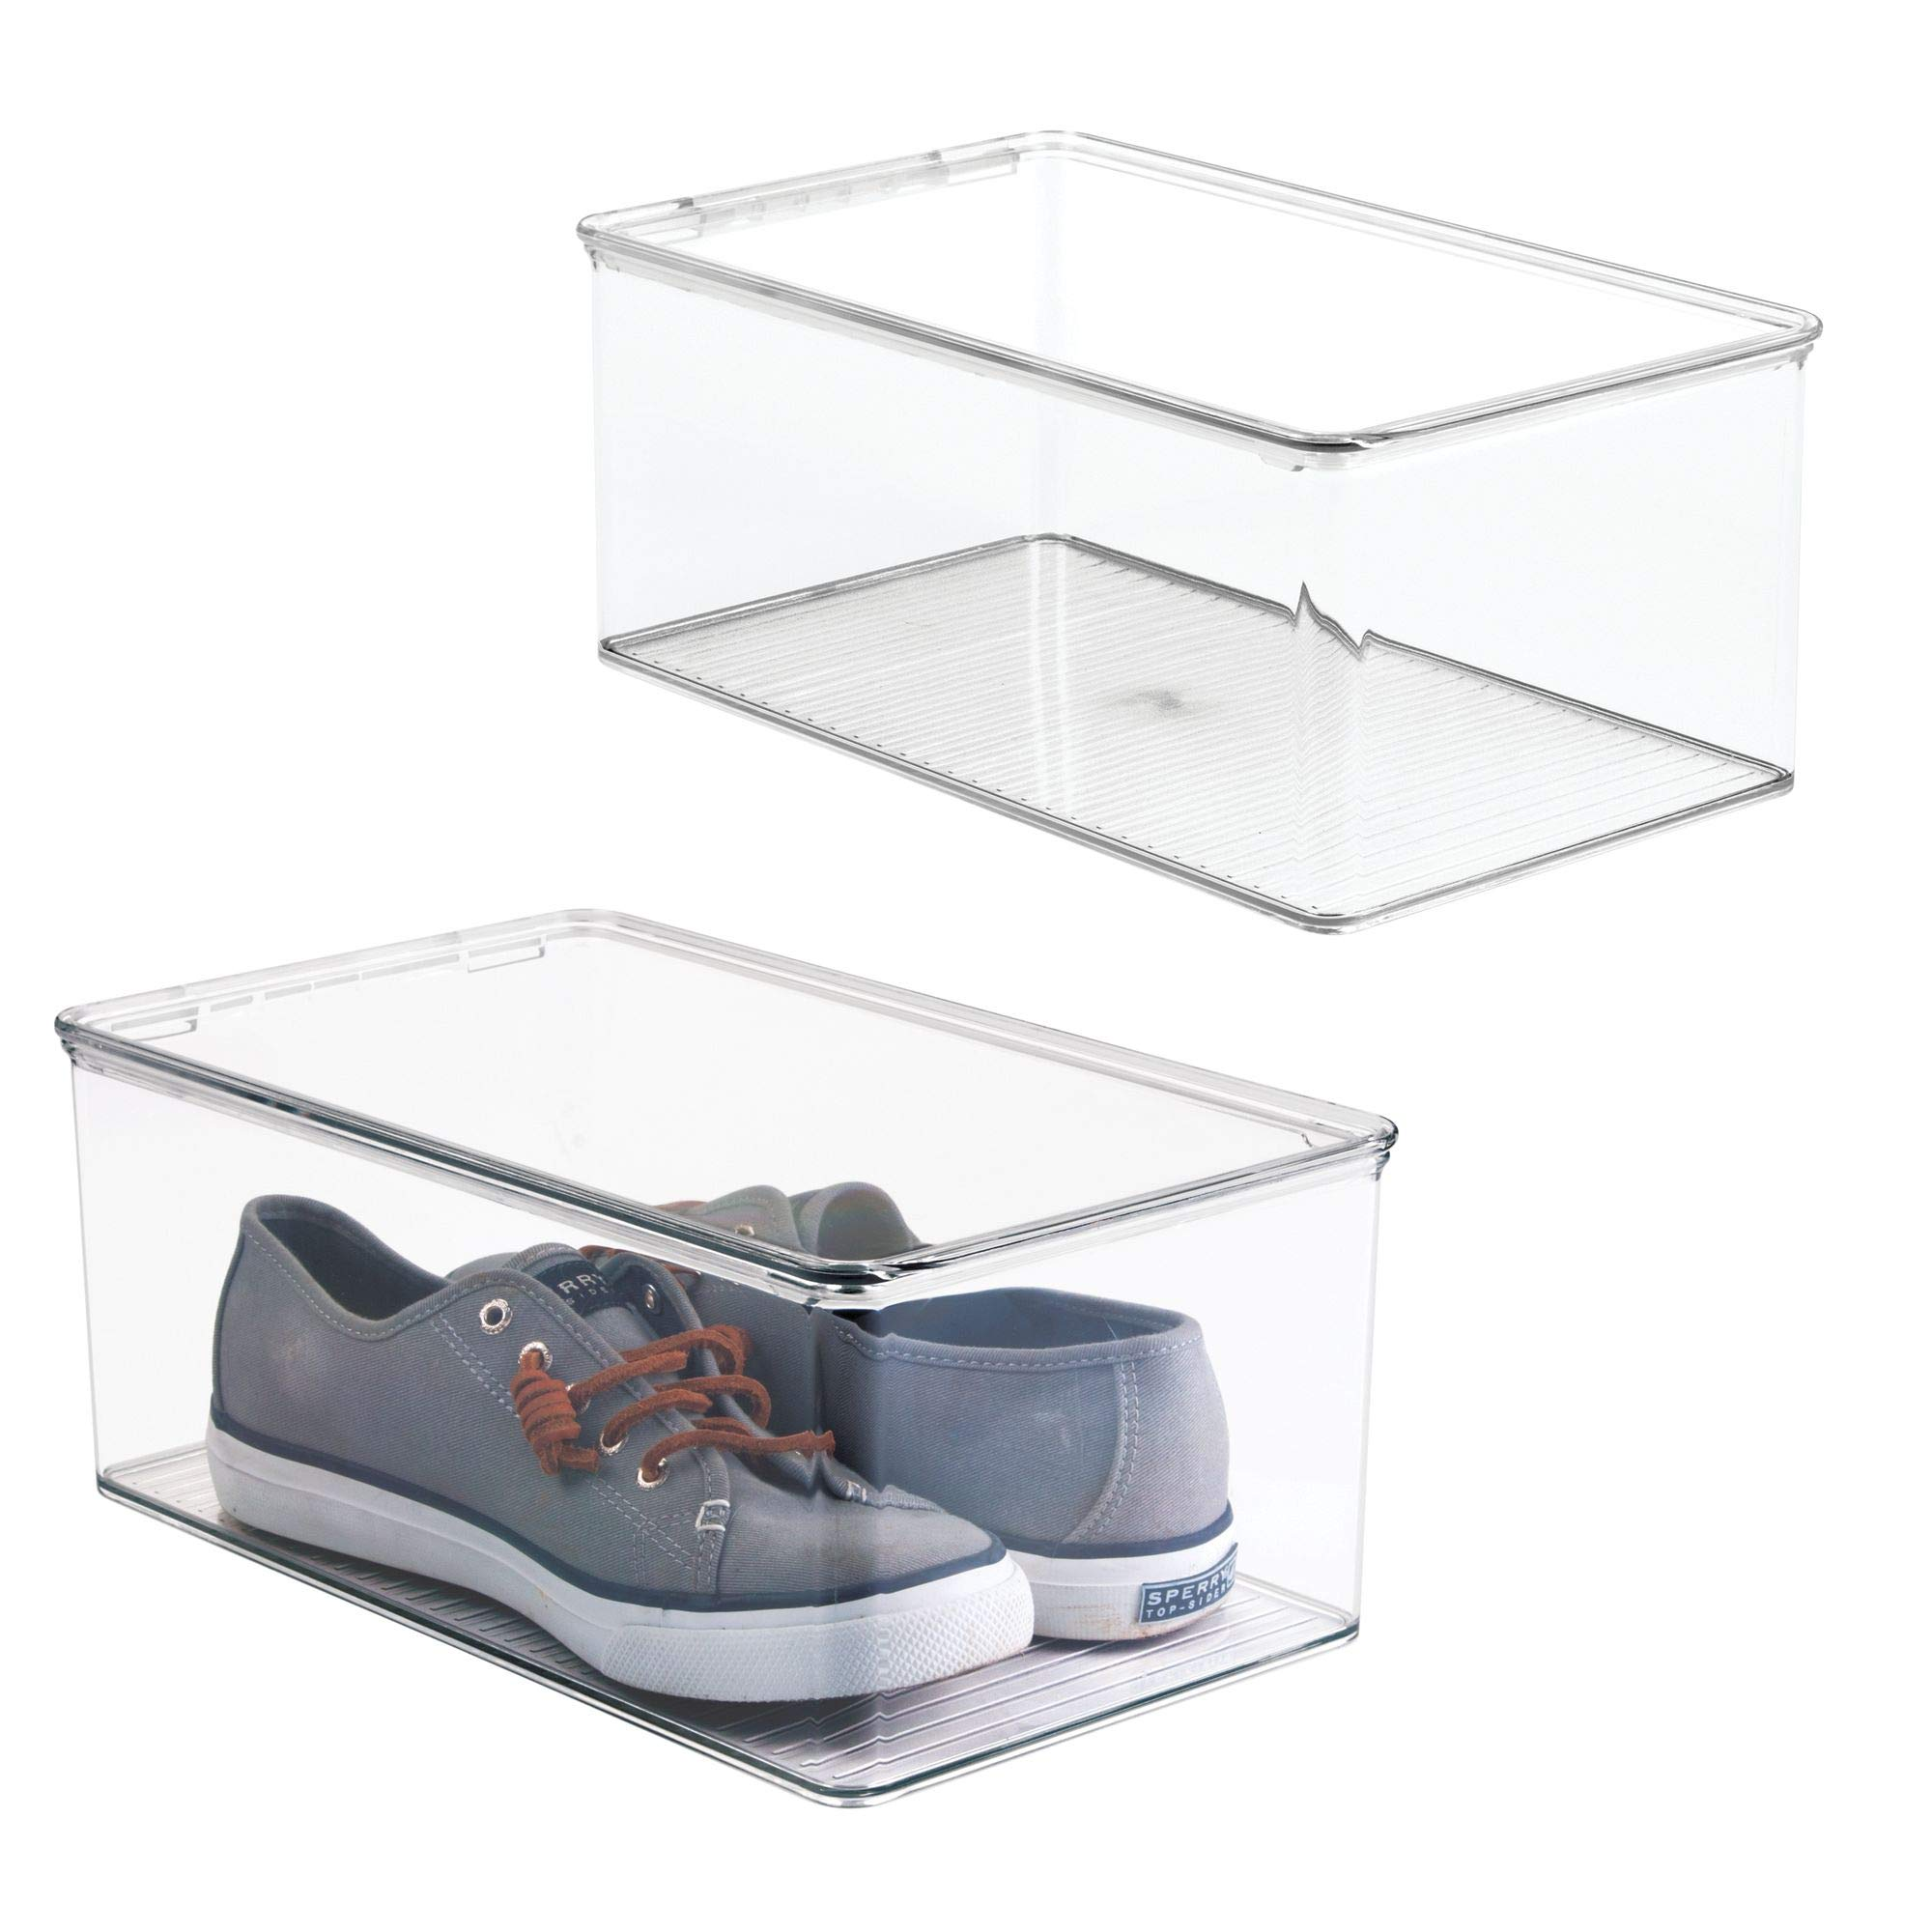 mDesign Stackable Plastic Closet Shelf Shoe Storage Organizer Box with Lid for Mens, Womens, Kids Sandals, Flats, Sneakers - Pack of 2, Clear